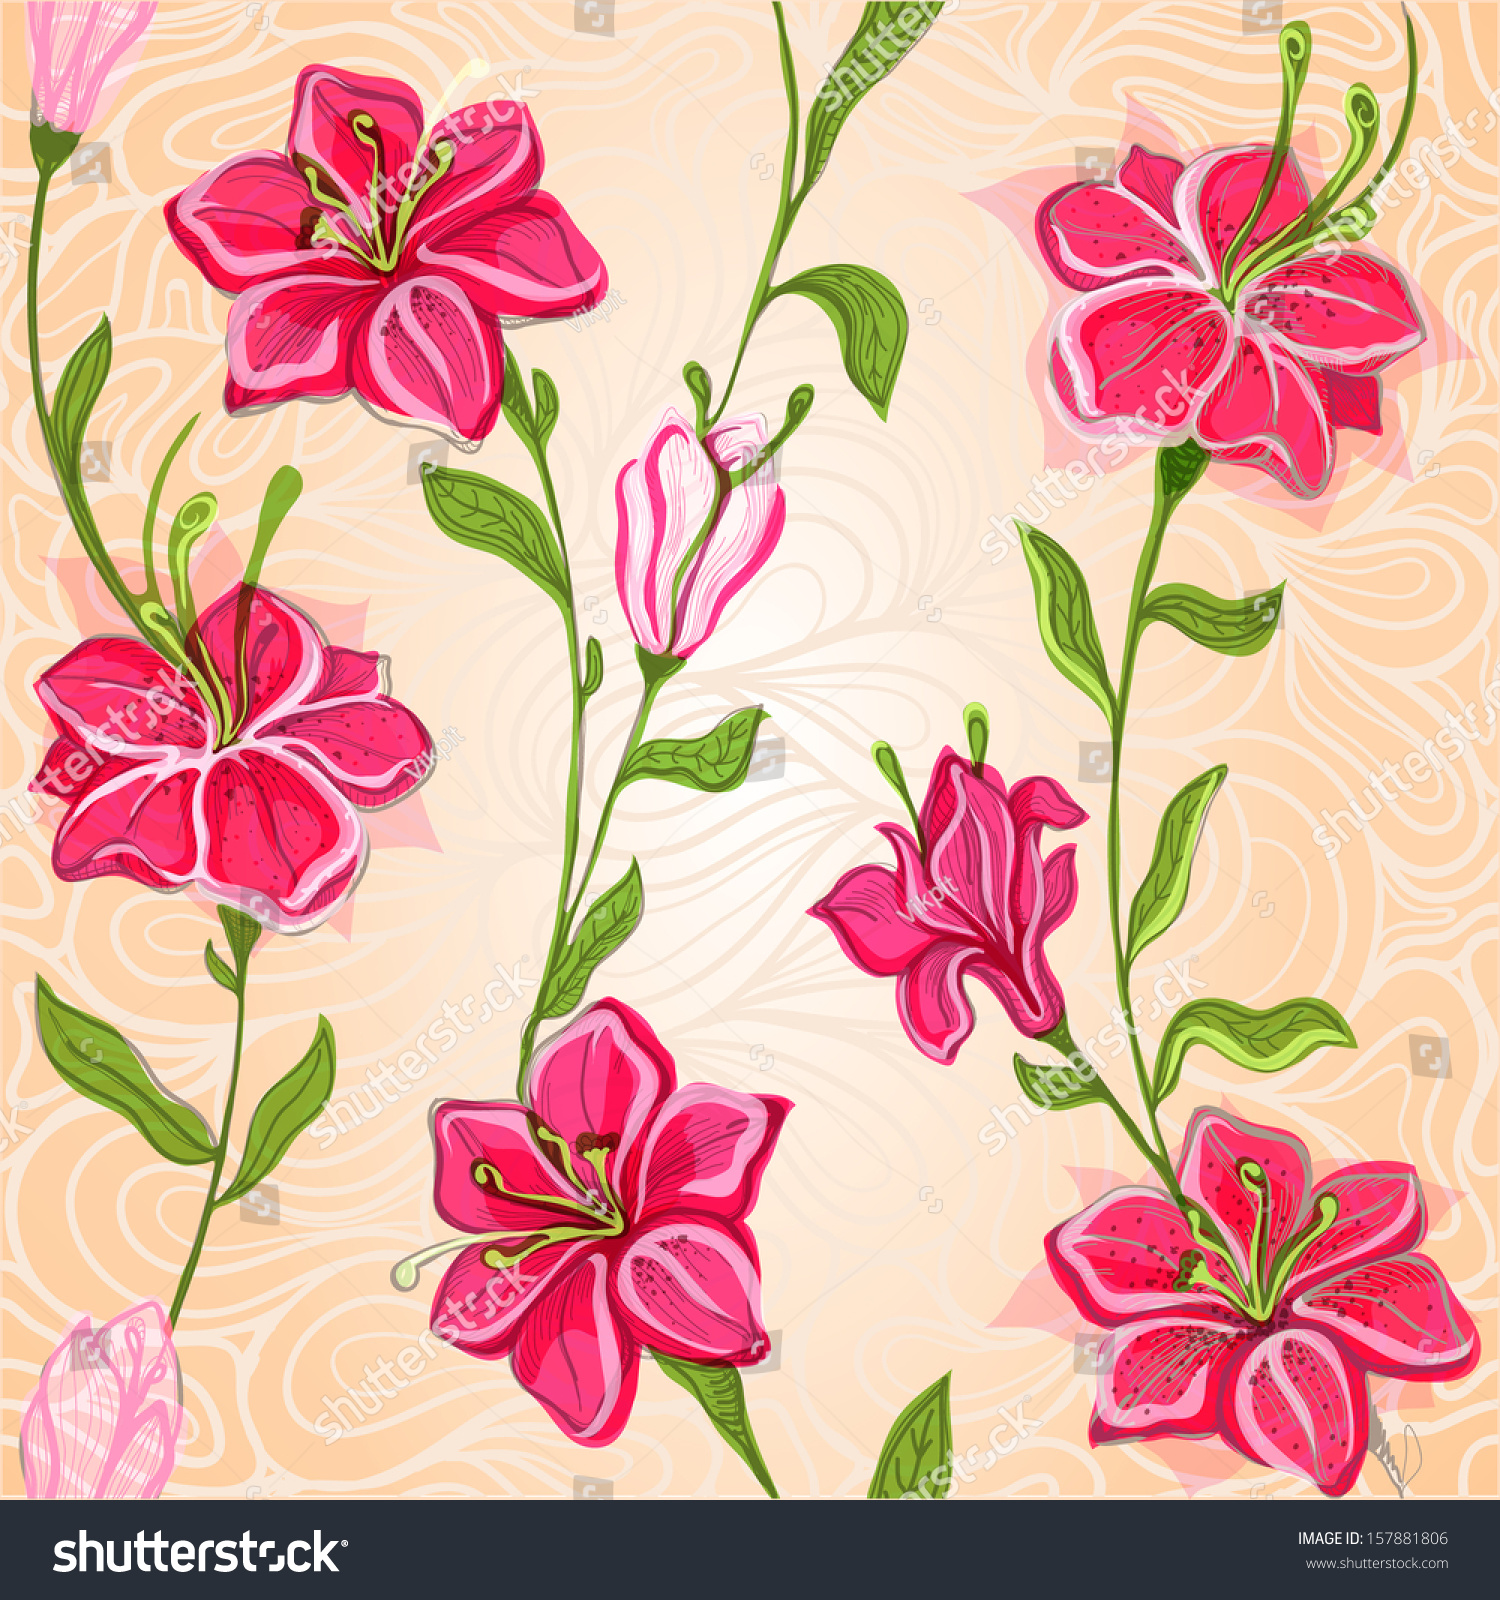 Wallpapers of lily flower with a background of waves recurring id 157881806 izmirmasajfo